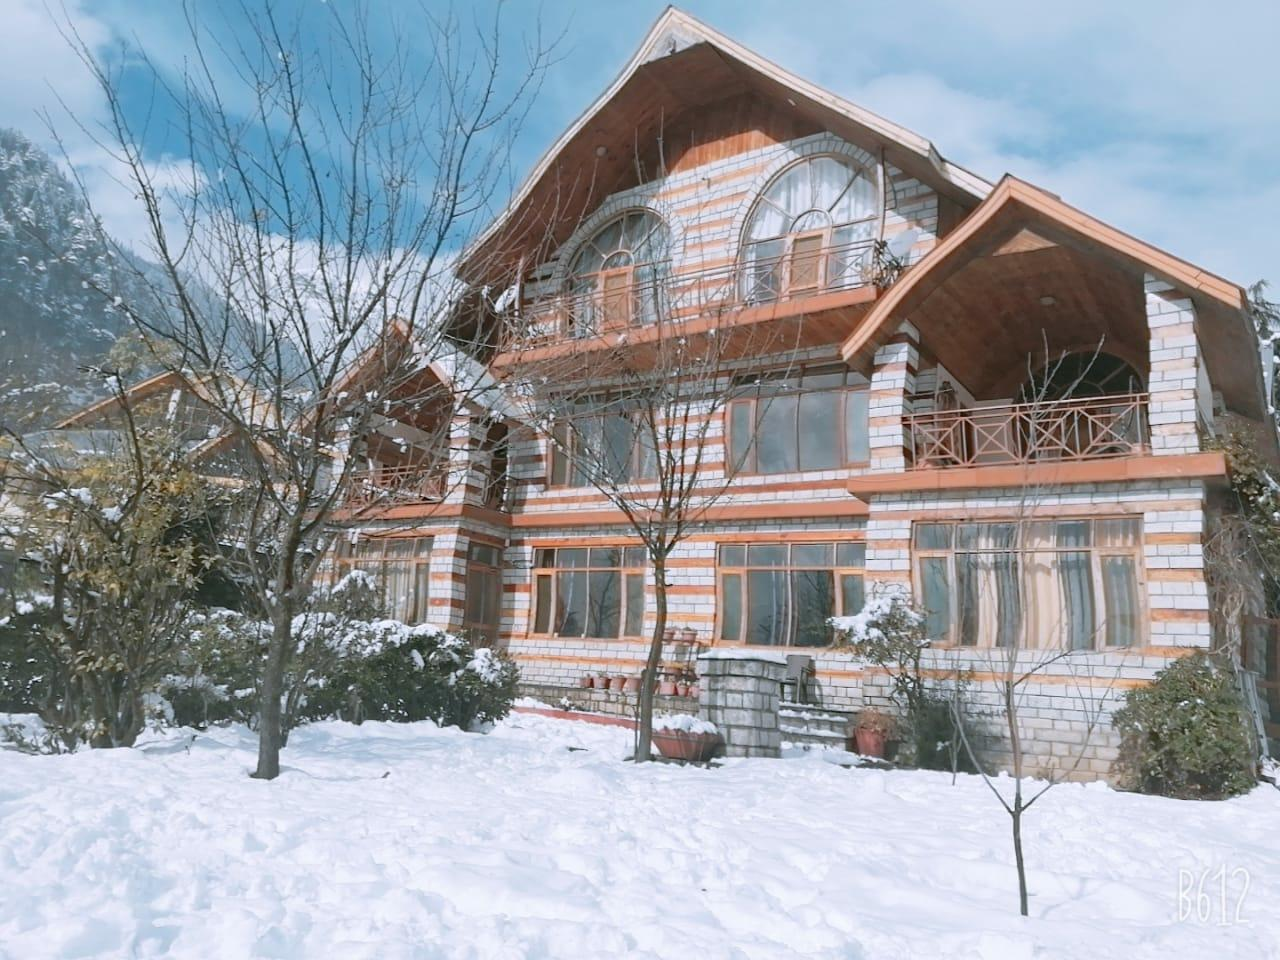 3BR Luxurious Wooden Chalet In Himalayas